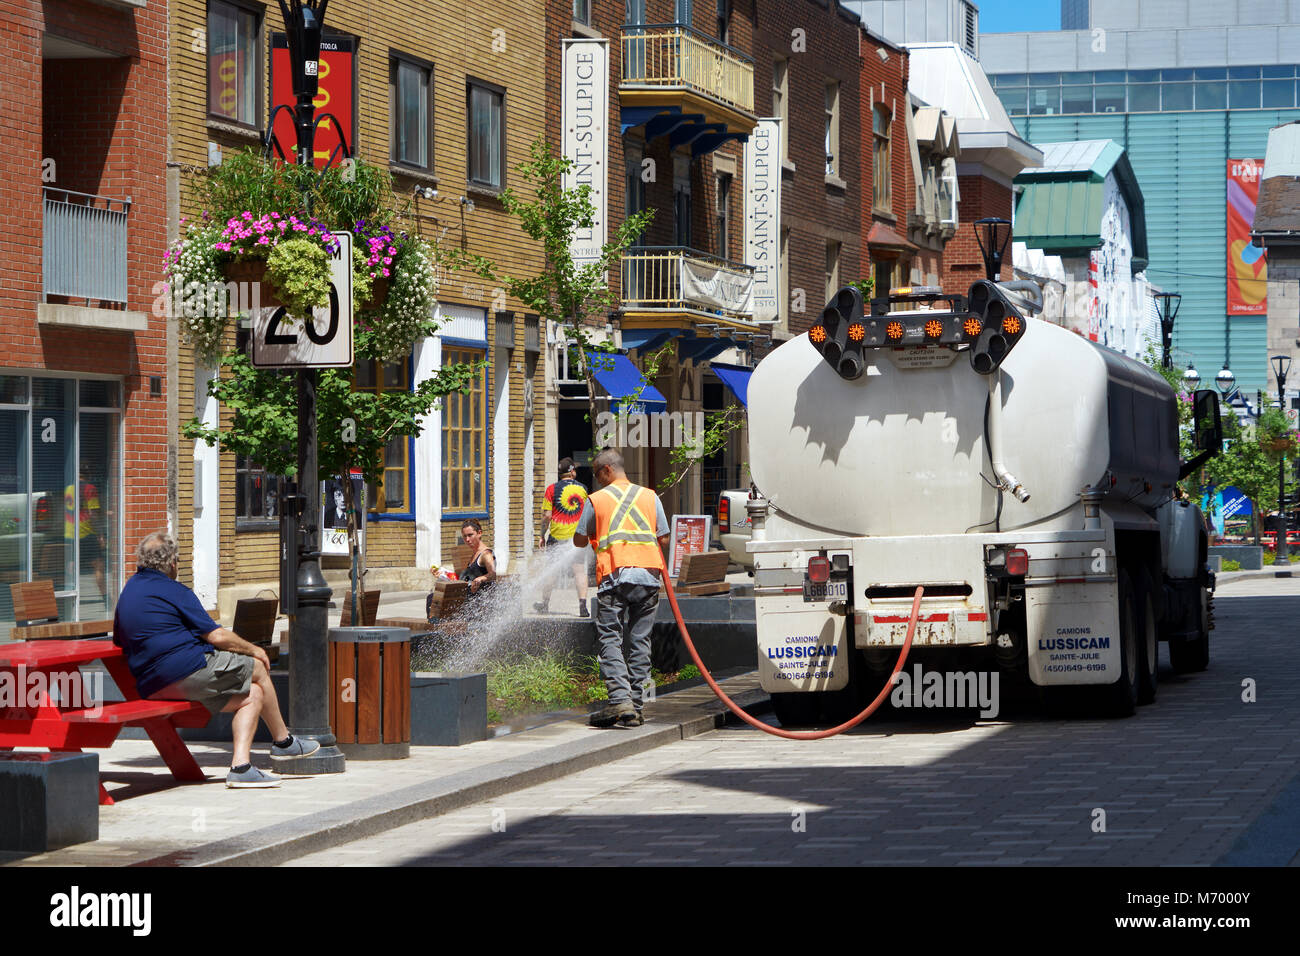 Montreal city employee watering trees and plants on the street. - Stock Image